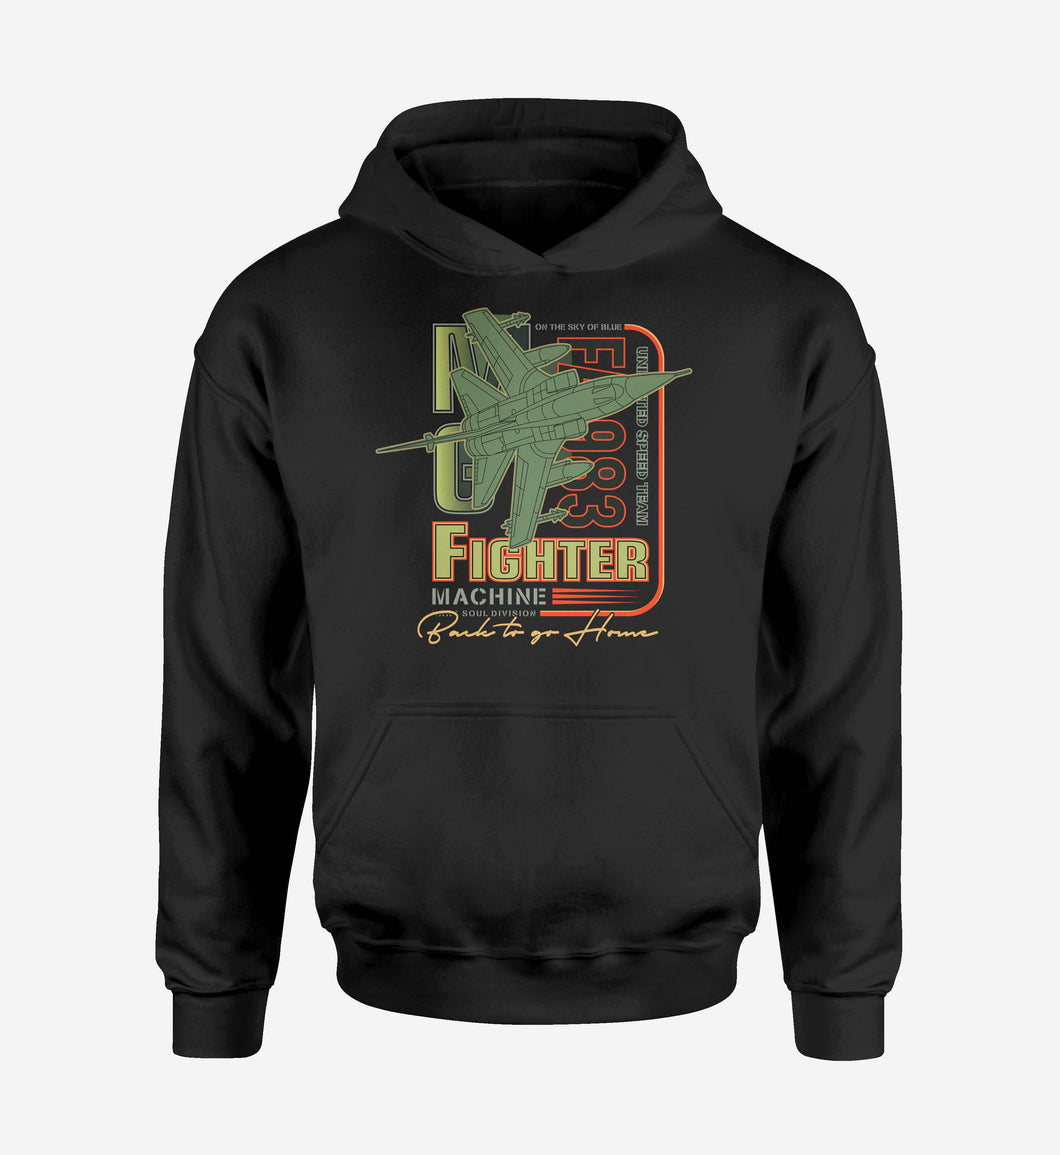 Fighter Machine Designed Hoodies